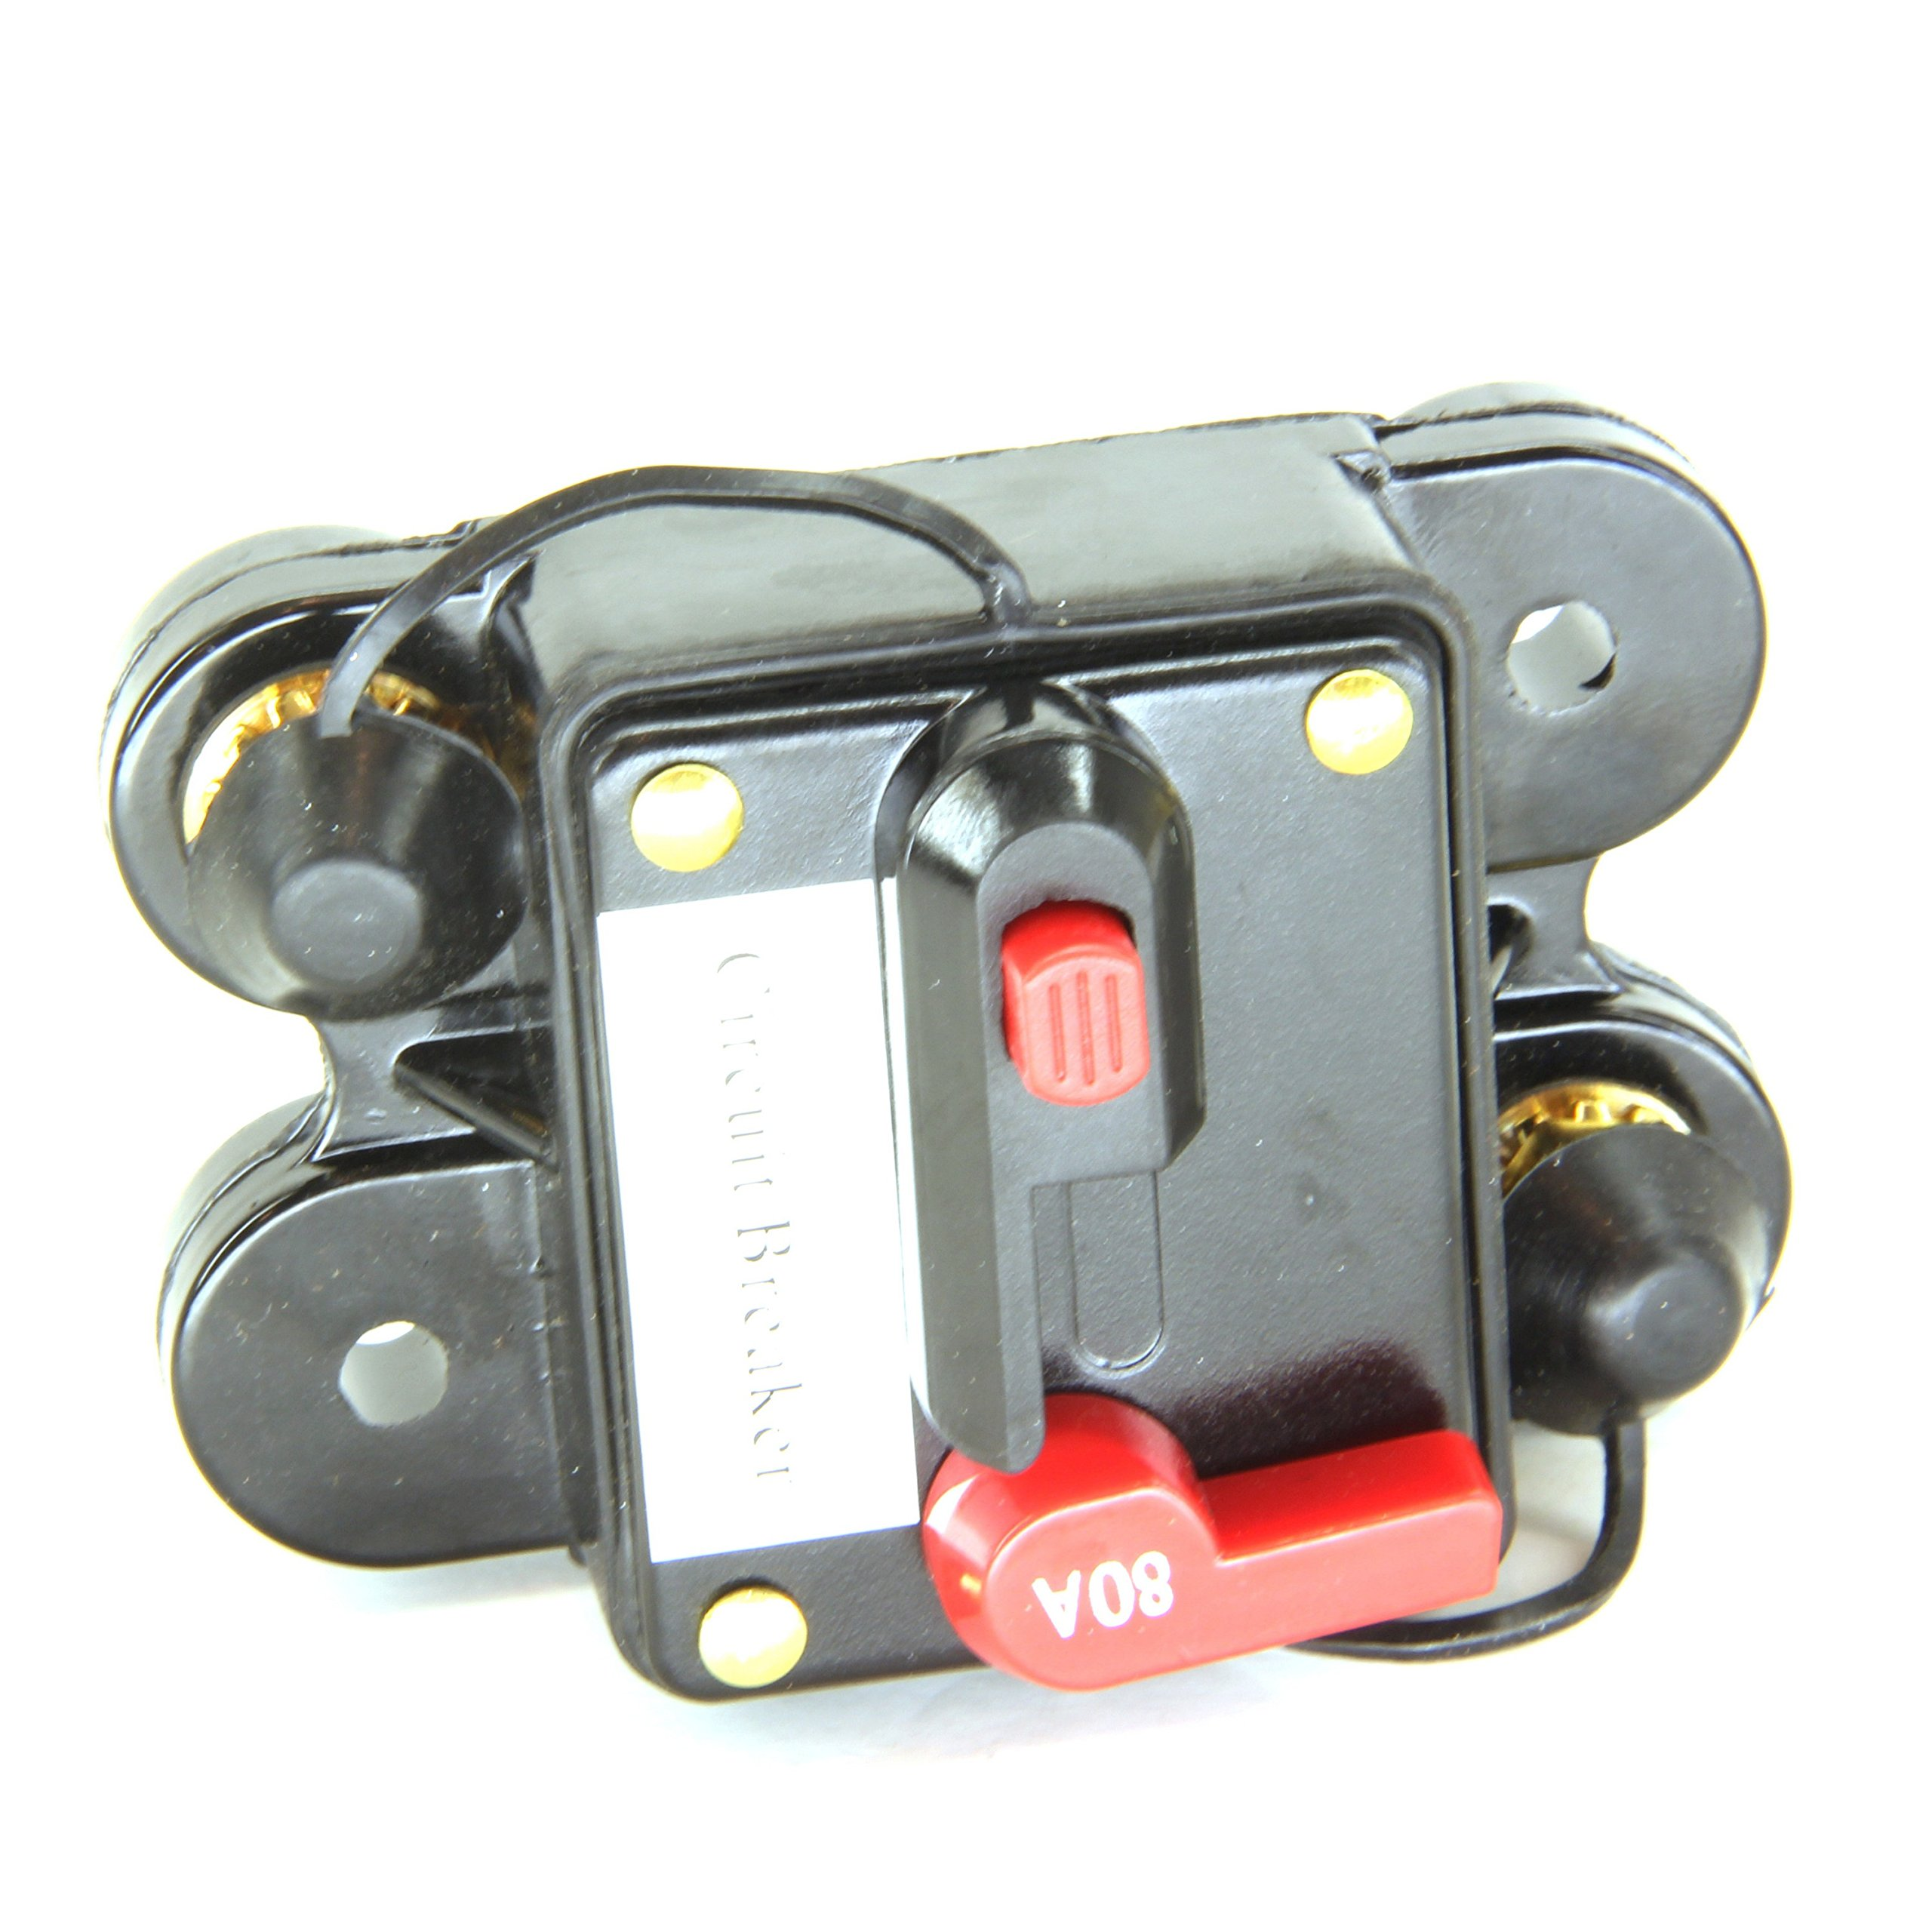 HFS 100 Amp 12V CONTACTOR (Circuit Breaker) for Anchor Windlass by HFS